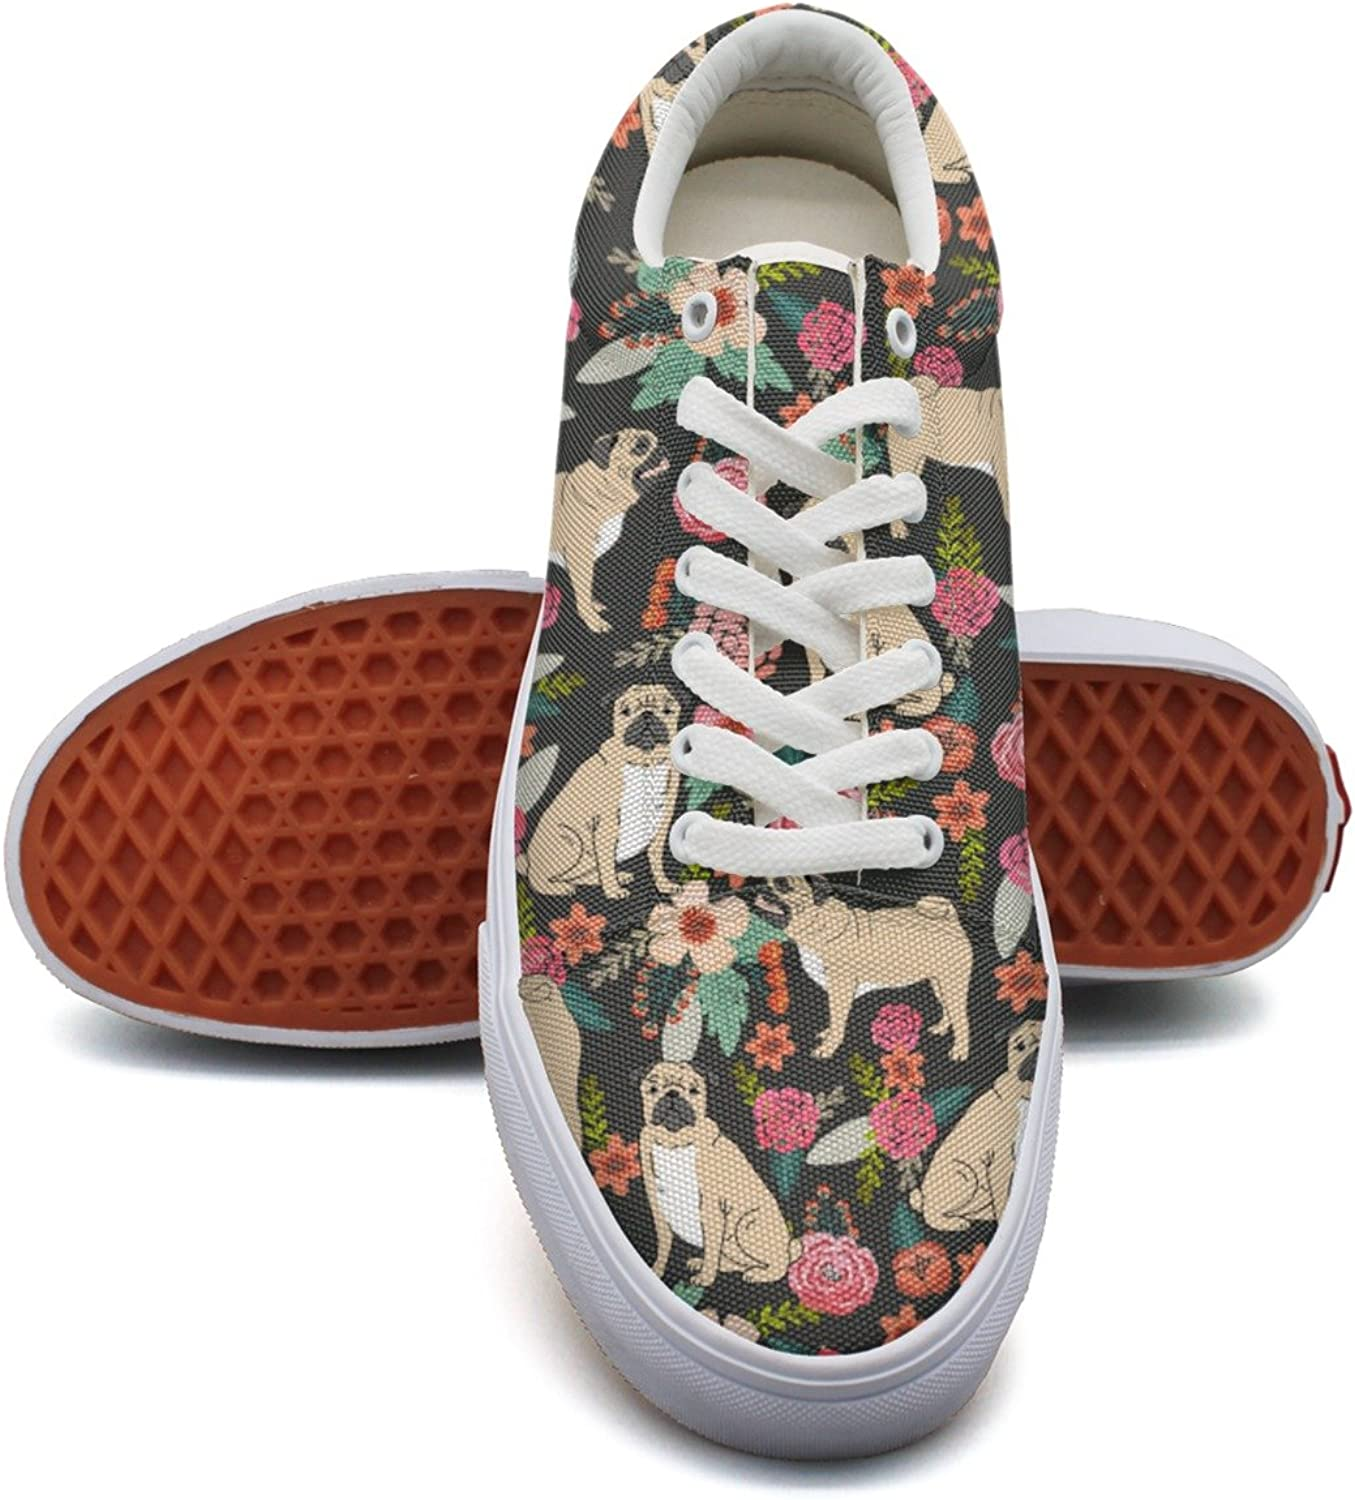 Feenfling Vintage Pug Florals Pet Womens Casual Canvas Sneakers Low Top Exclusive Volleyball Sneakers for Women's